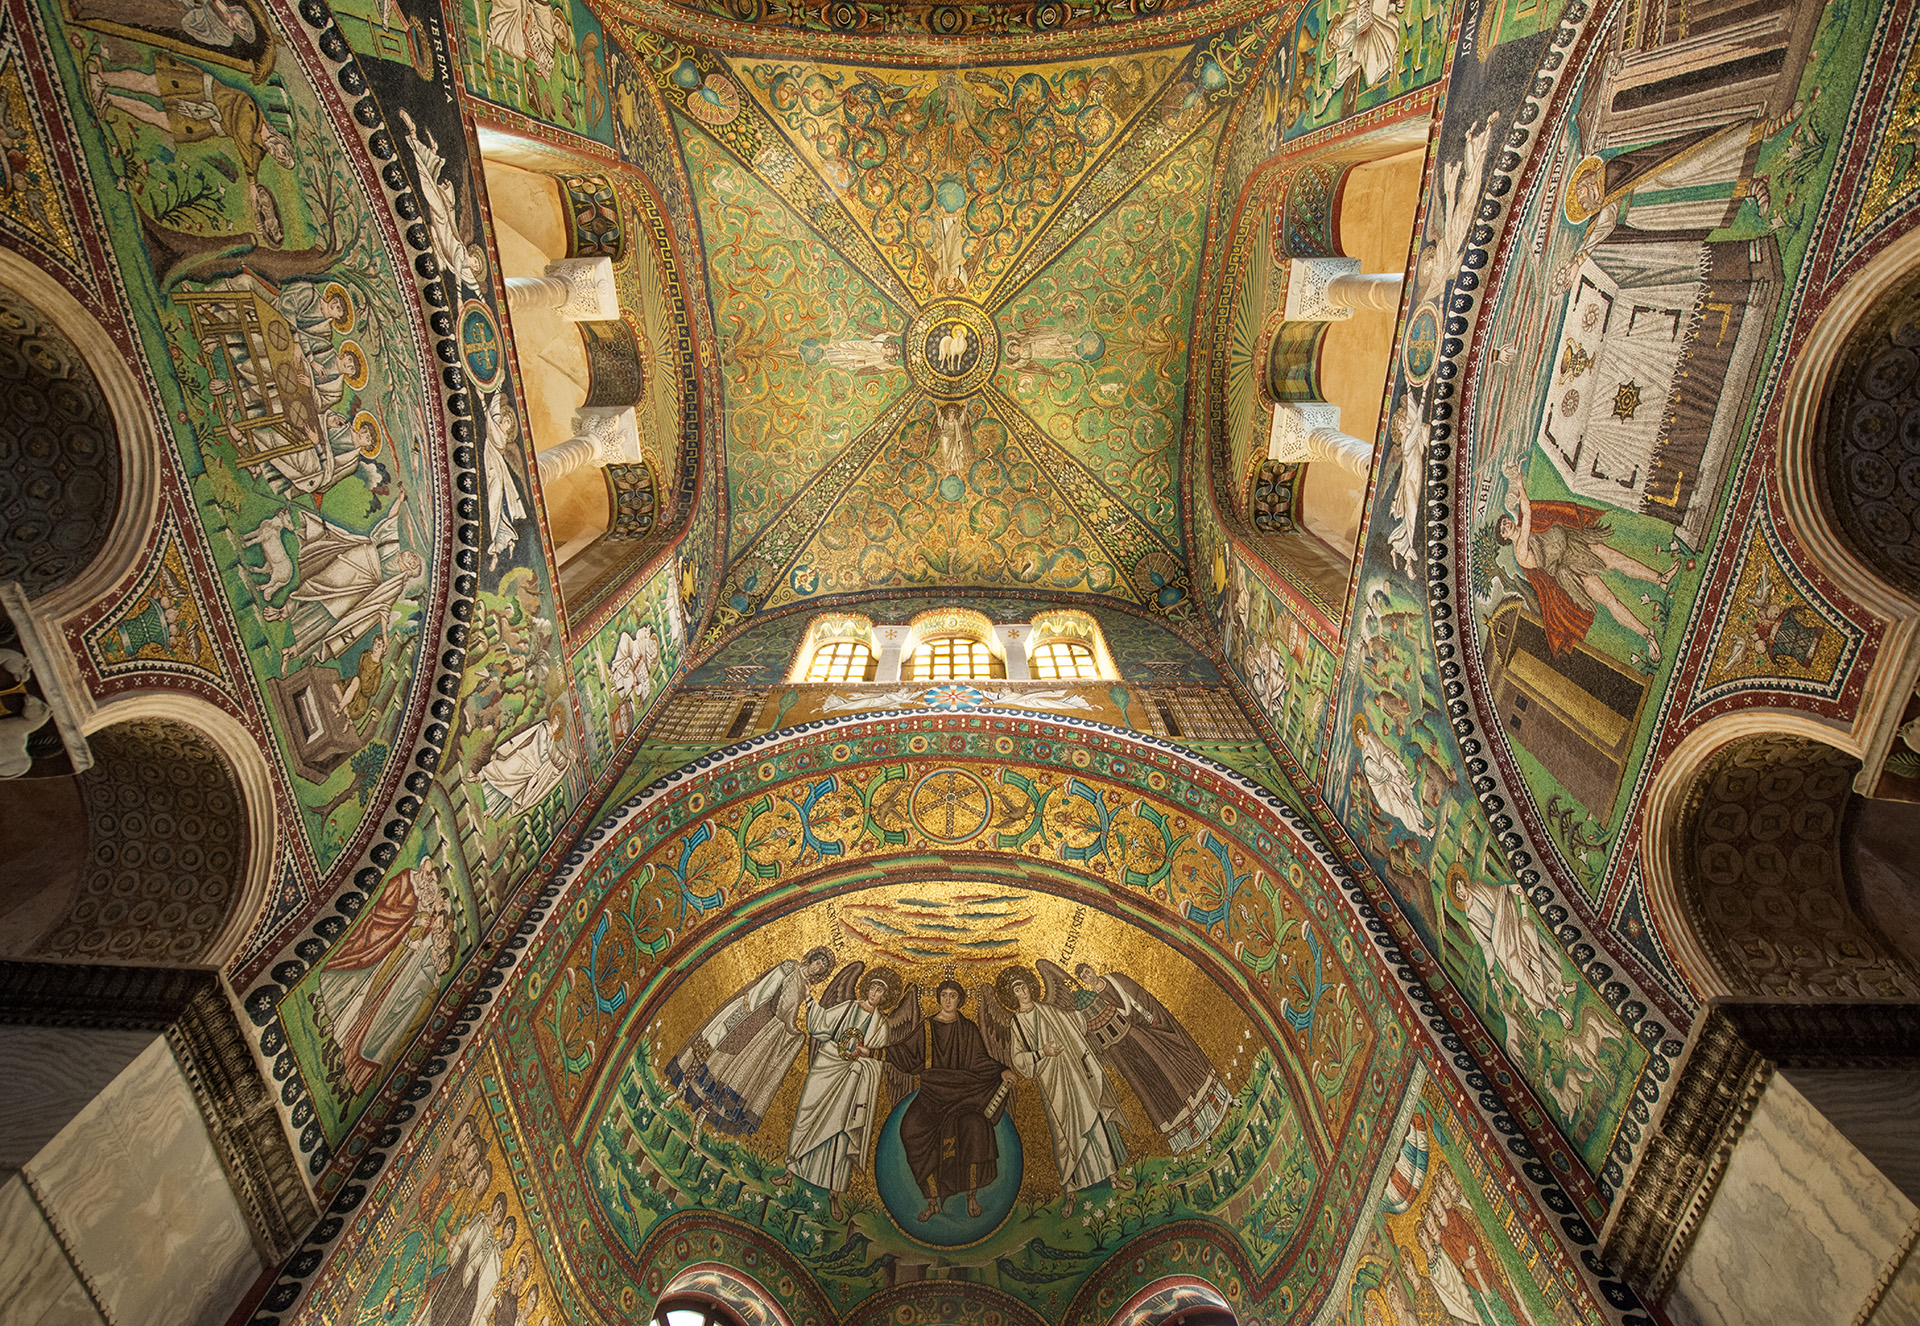 Ravenna is one of the most beautiful city in Italy and Cinzia Fabbri is your personal guide